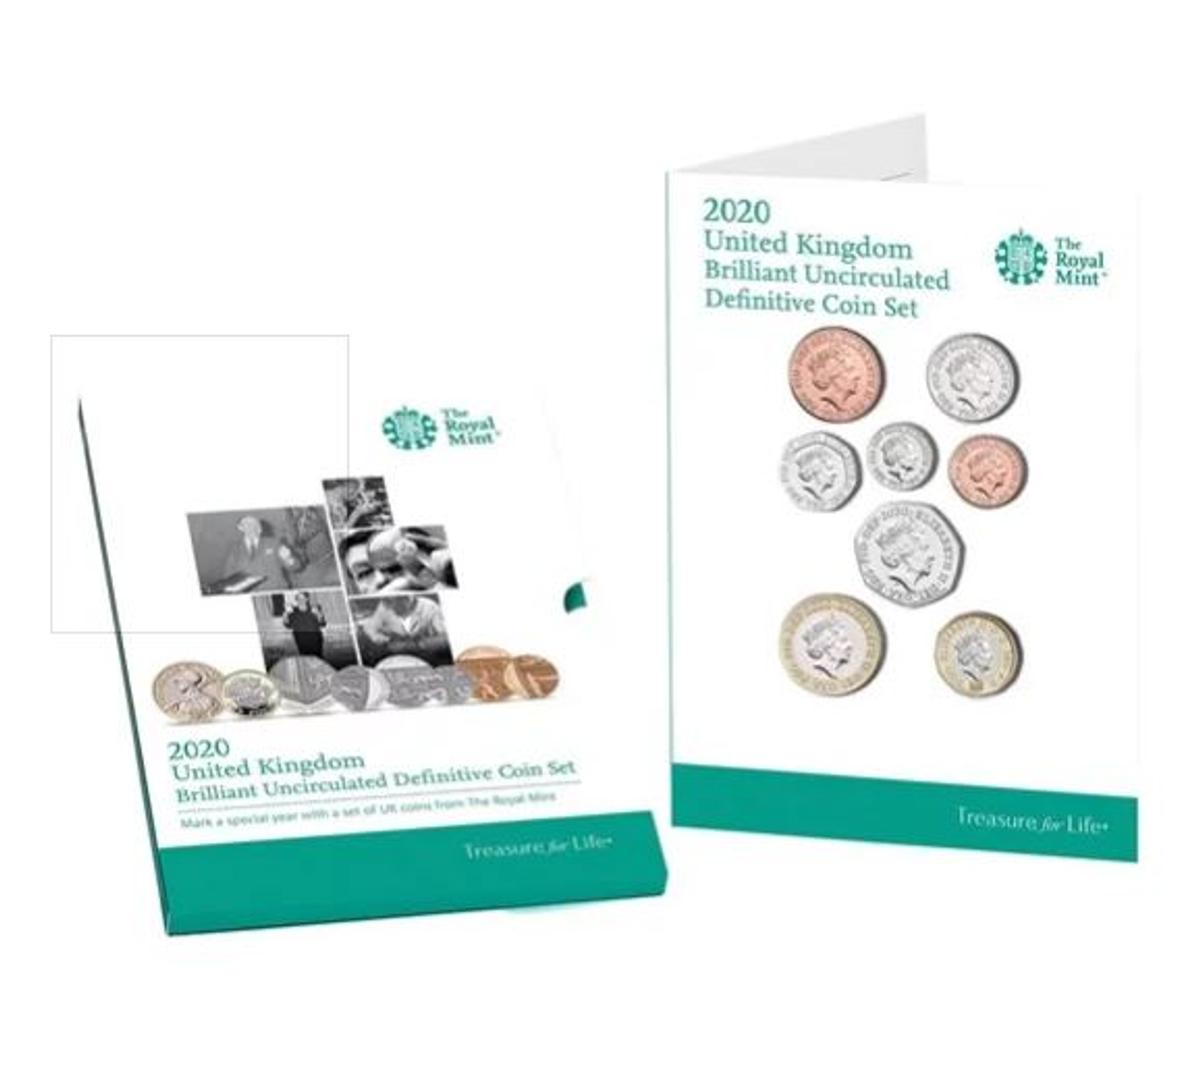 This is a SET CUT from the new 2020 United Kingdom Brilliant Uncirculated Annual Coin Set. Each coin is coming with its description card and this is a set cut from the 2020 UK BU Annual set.  The full 2020 UK BU annual coin set cut is formed of 8 coins:  £1 Brilliant Uncirculated 1p Brilliant Uncirculated 2p Brilliant Uncirculated 5p Brilliant Uncirculated 10p Brilliant Uncirculated 20p Brilliant Uncirculated 50p Brilliant Uncirculated £2 Brilliant Uncirculated  Can send via post with an extra